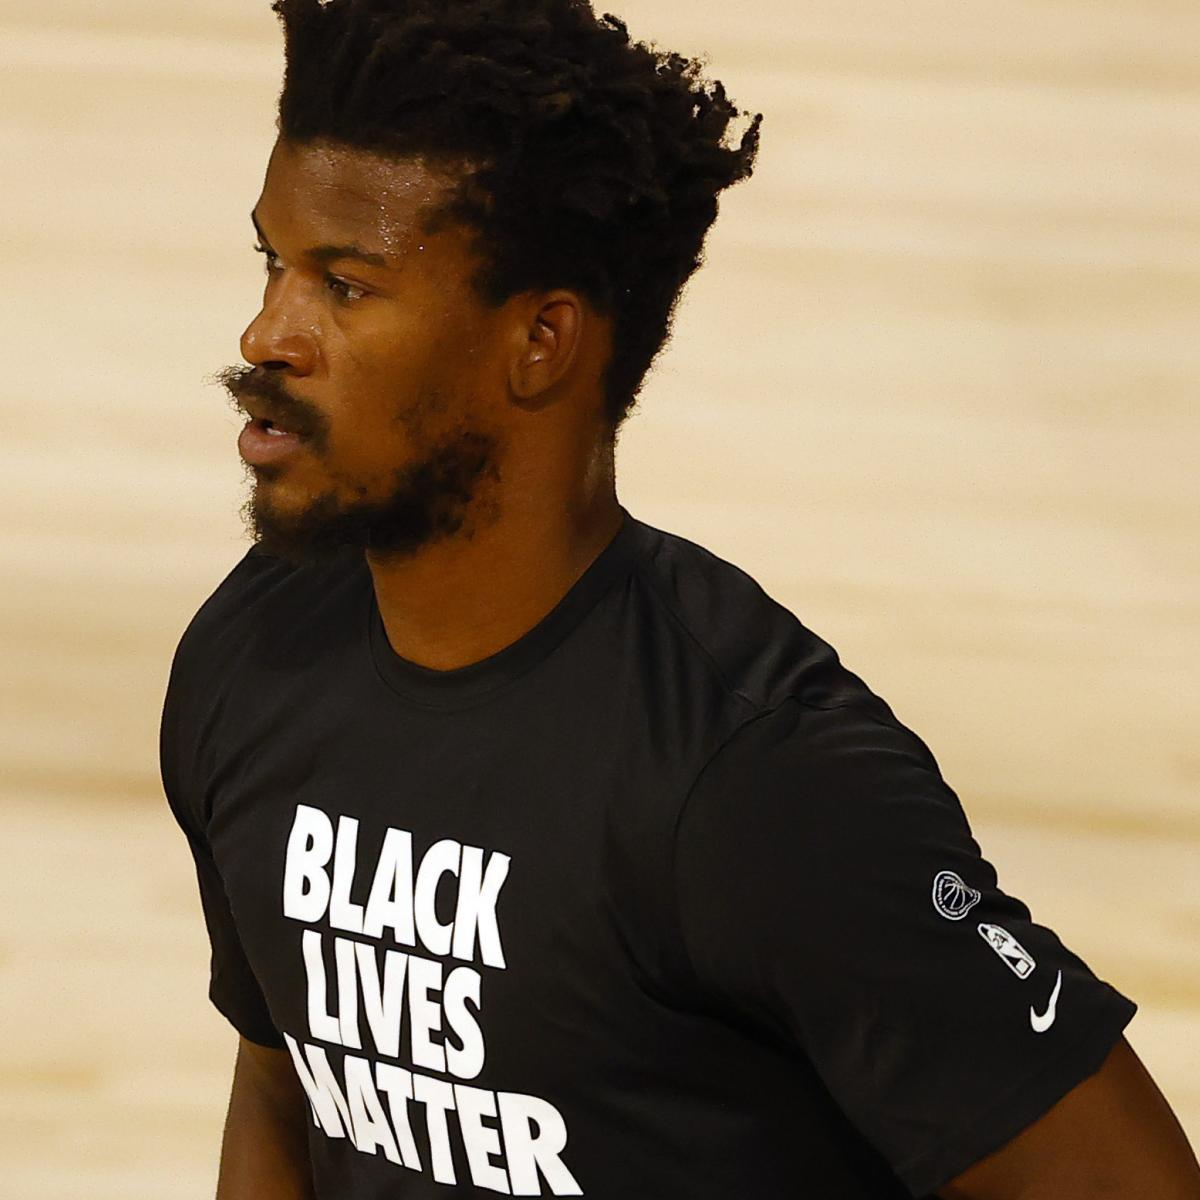 Video Jimmy Butler Wore Jersey With No Name Had To Change For Game To Begin Bleacher Report Latest News Videos And Highlights